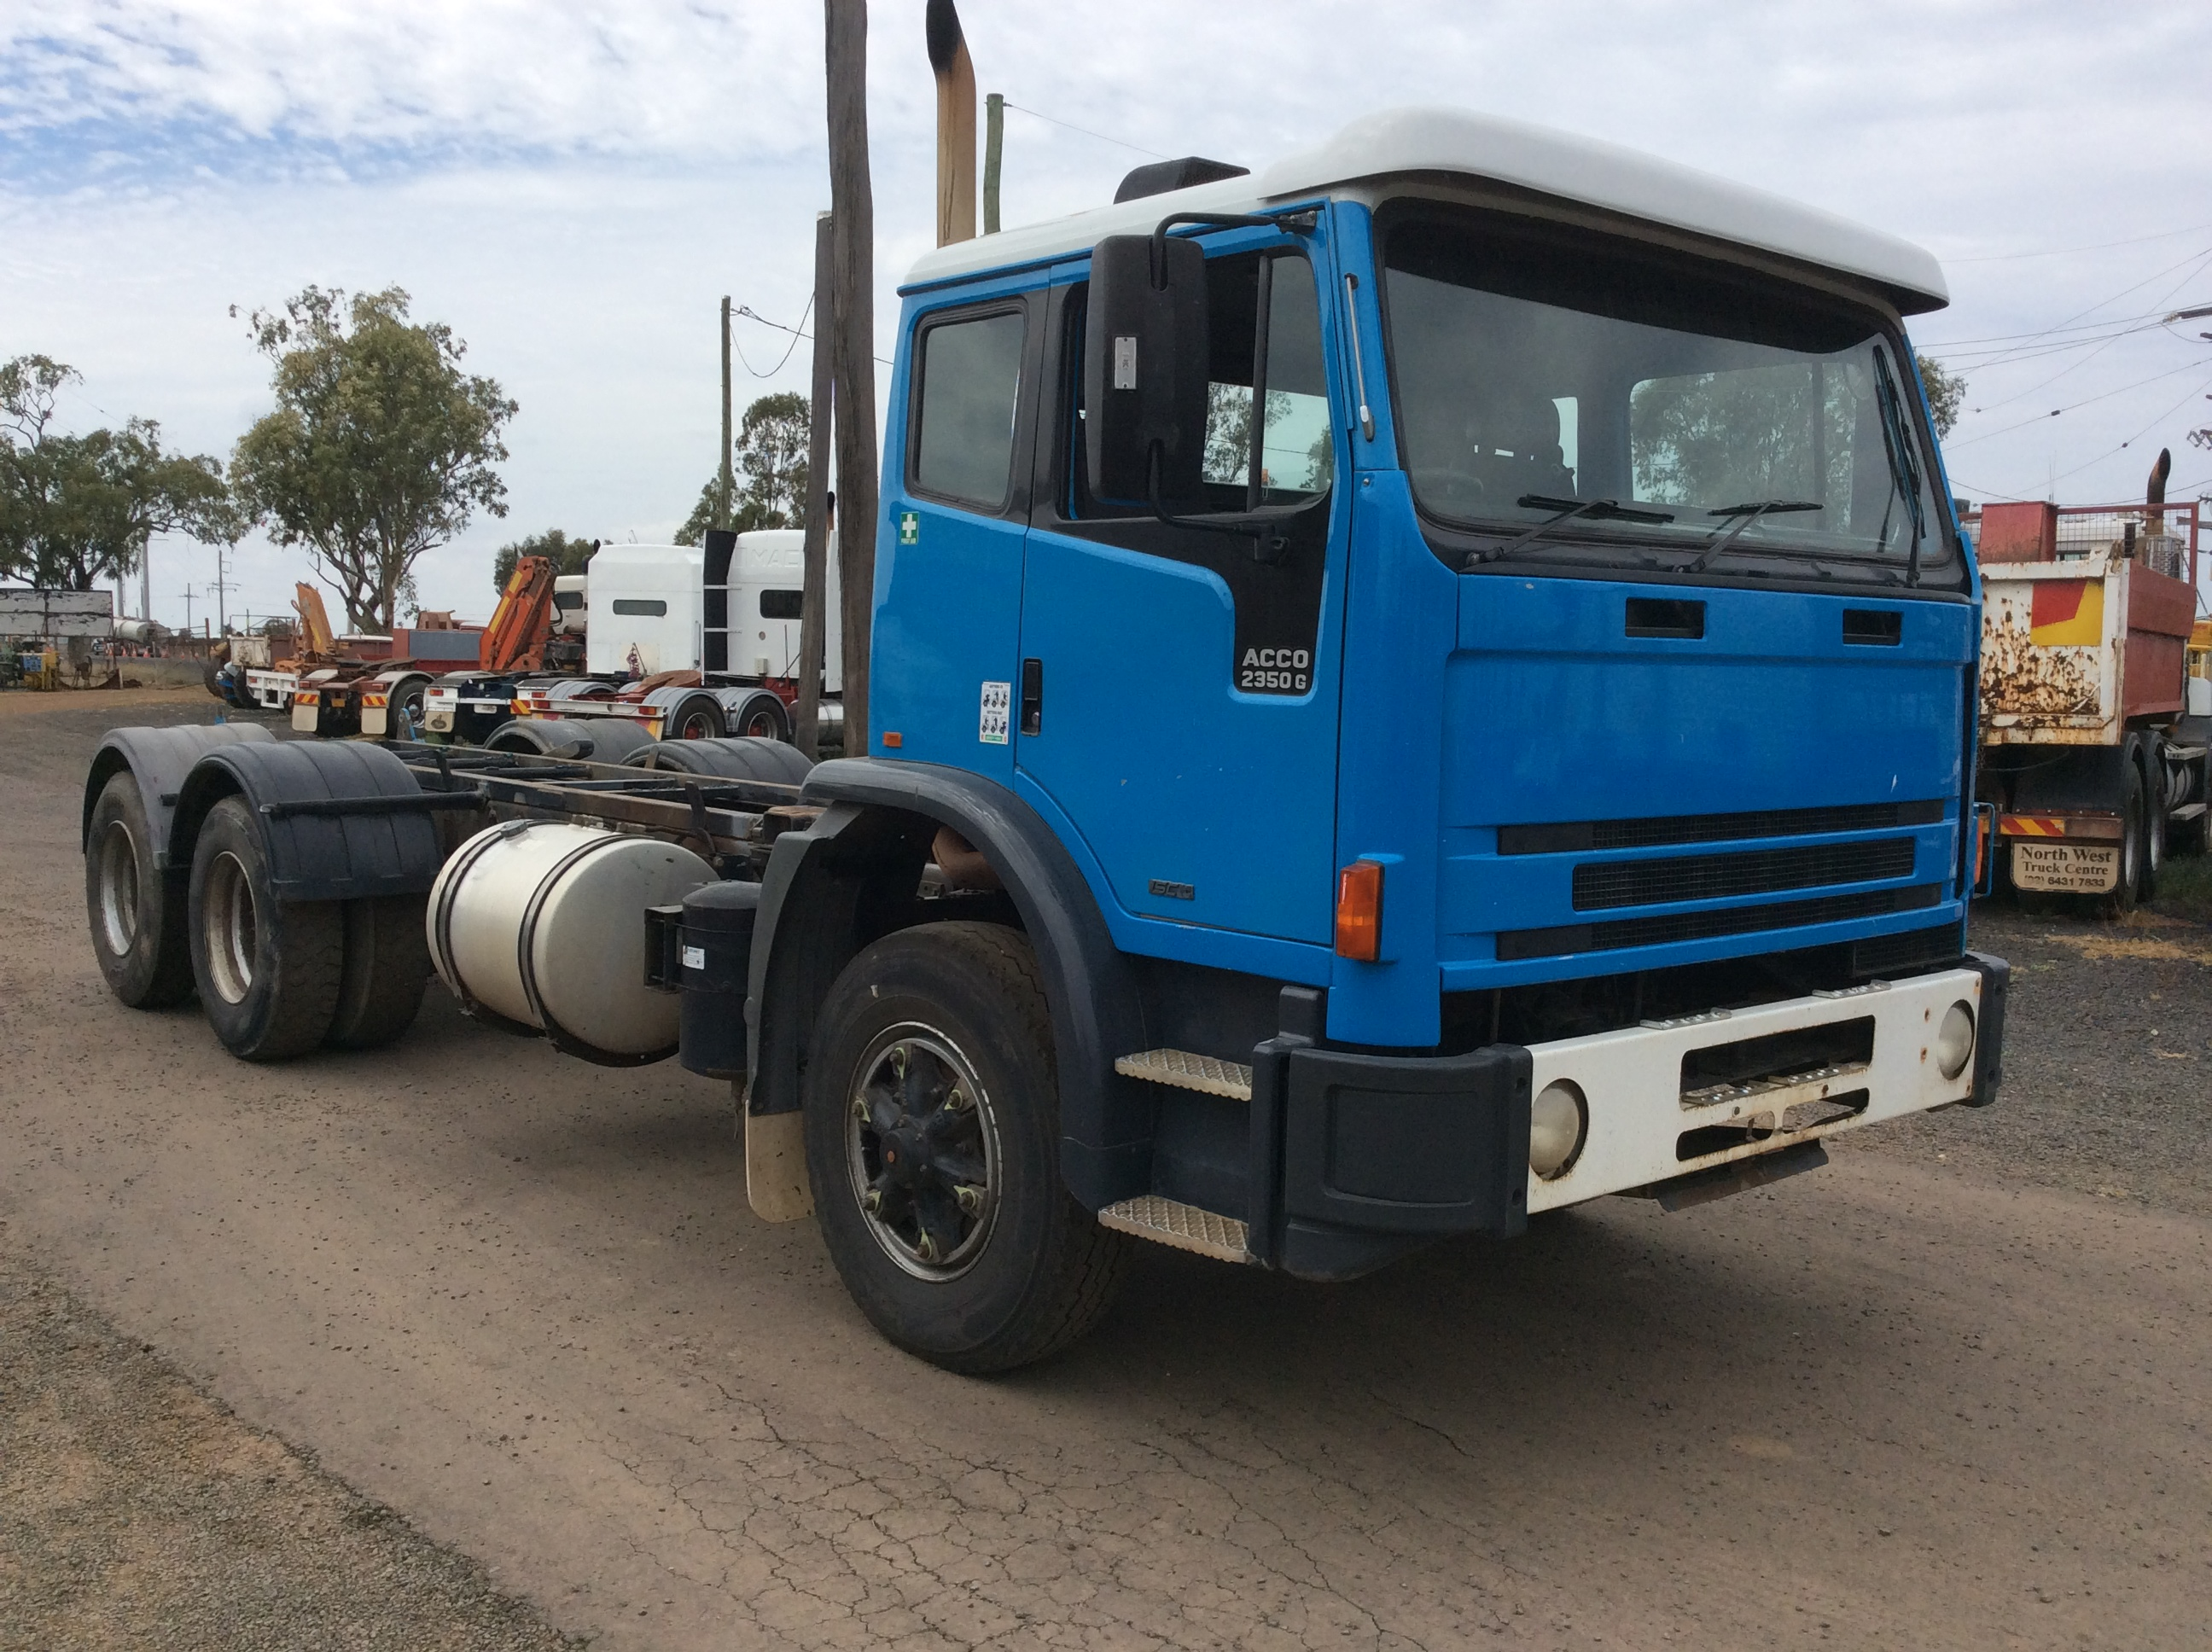 International Iveco Acco 2350g Truck Tractor Parts